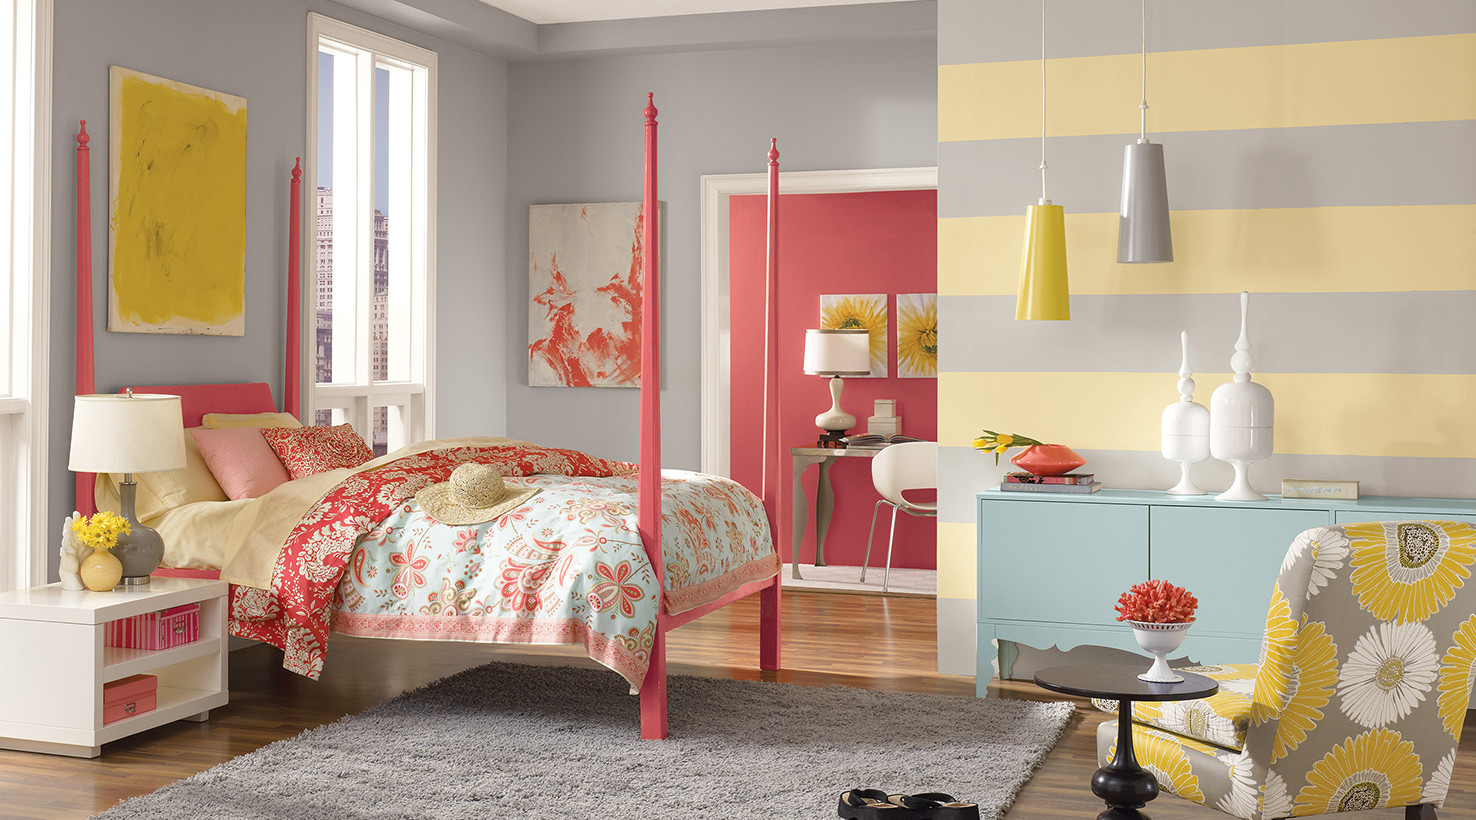 Best ideas about Kids Room Paint Colors . Save or Pin Teen Room Paint Color Ideas Now.